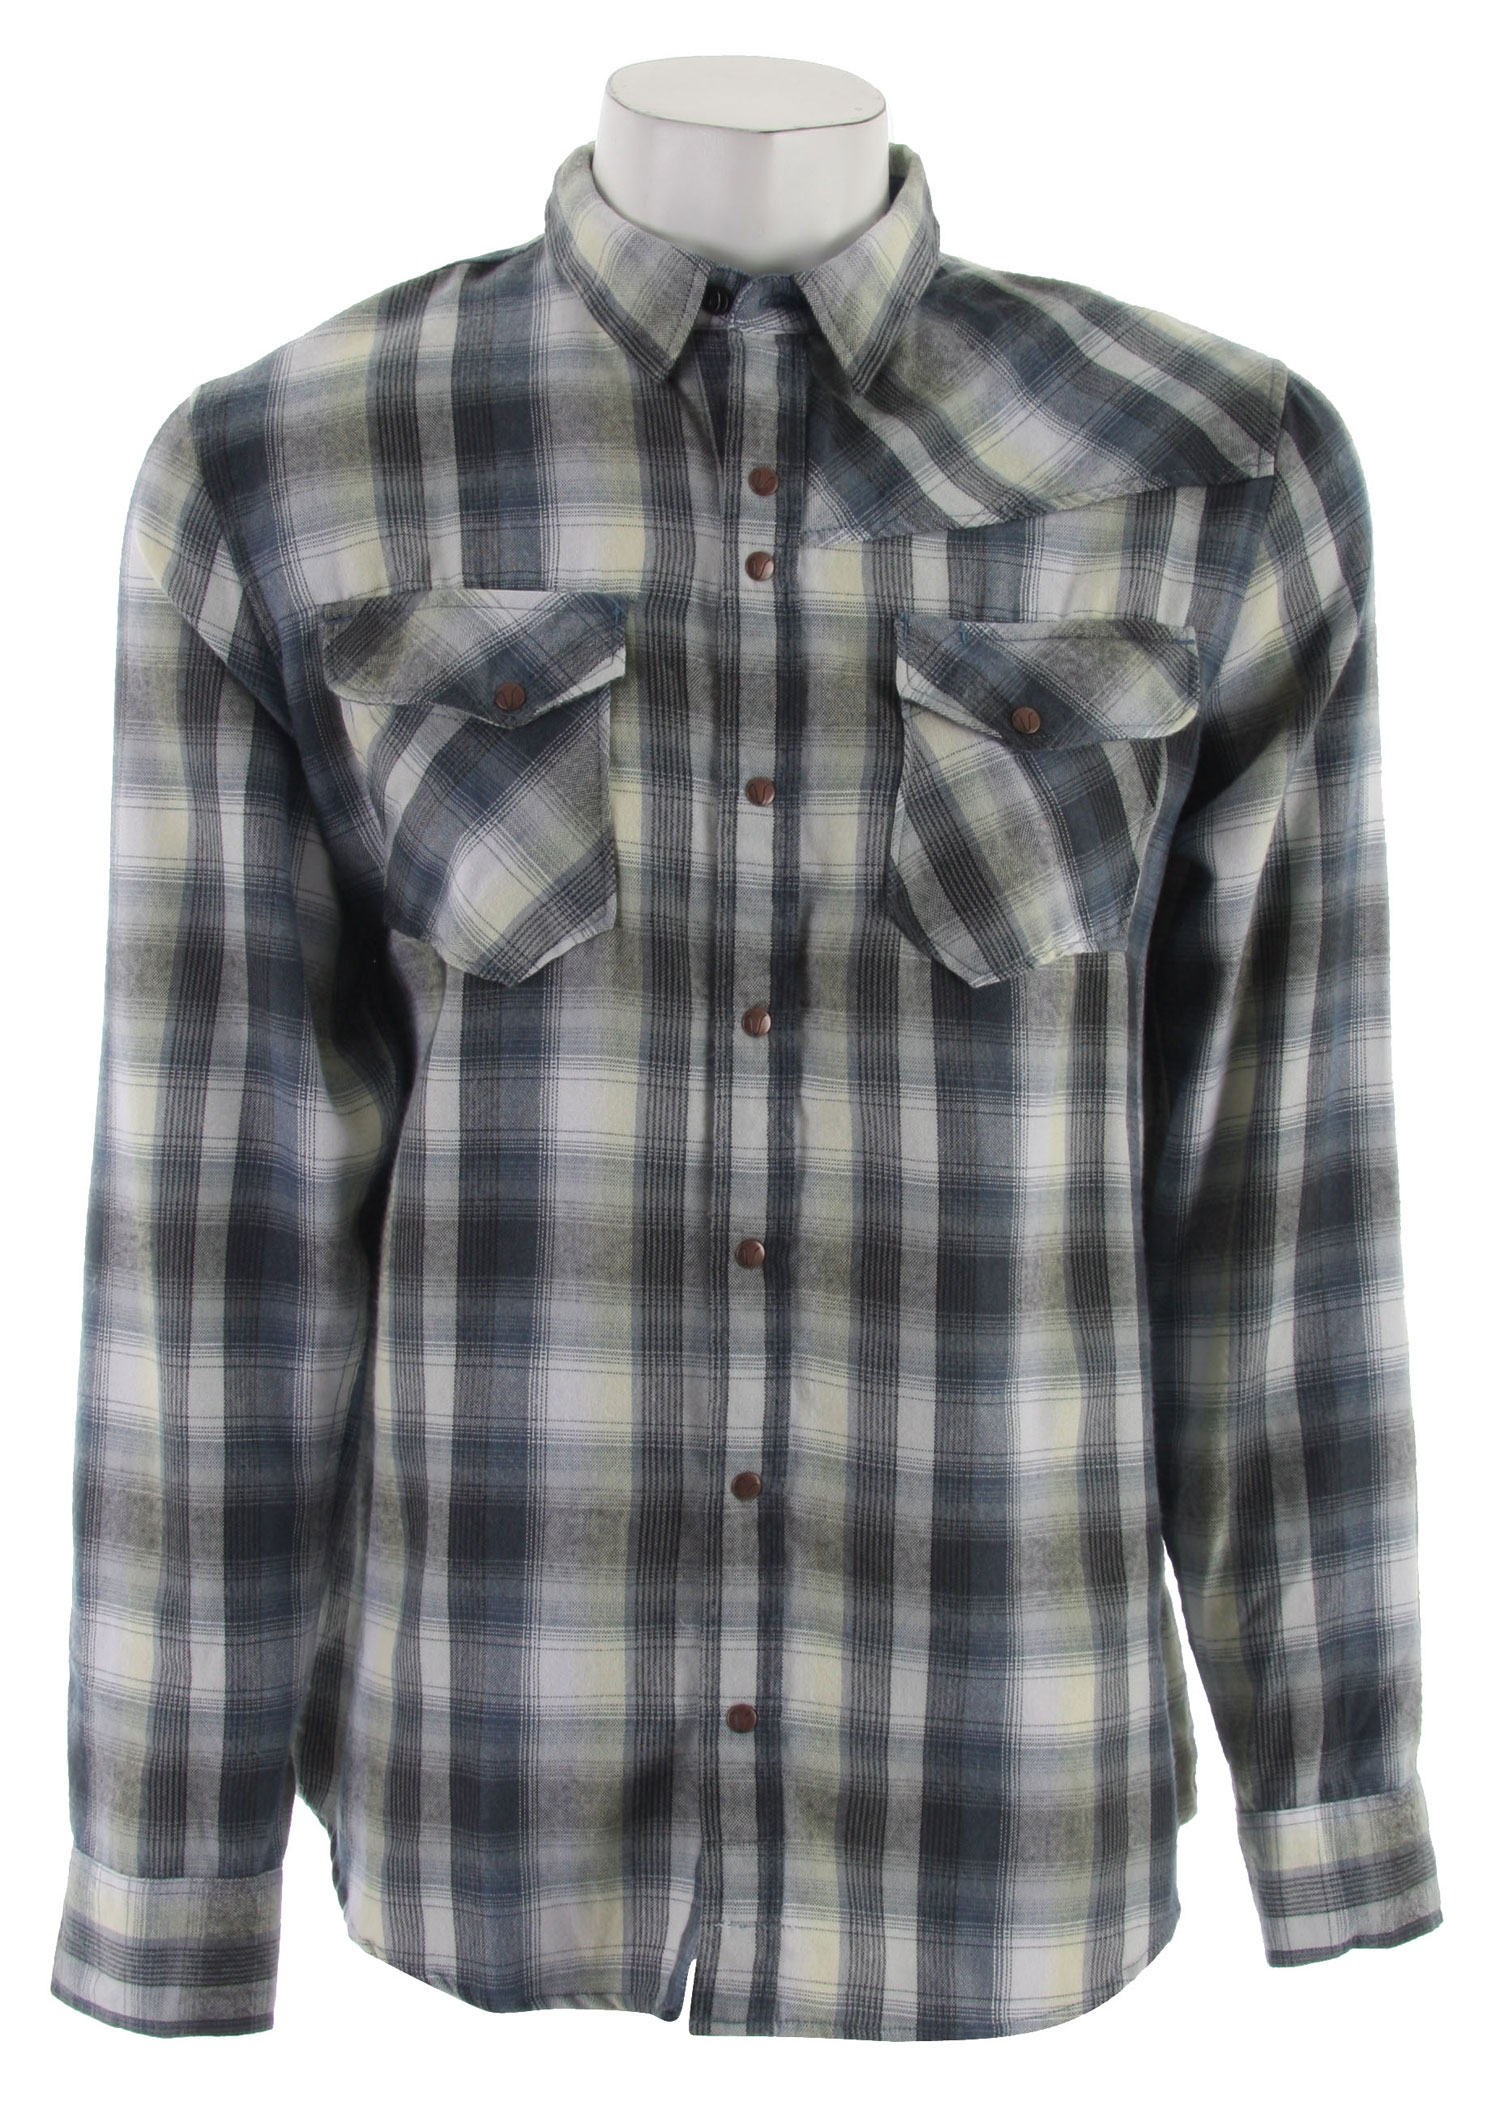 Surf Just because you're bent on smashing the status quo doesn't mean you have to part with tried and true traditions like the classic flannel shirt. The Volcom Refract L/S Shirt is a testament to the fact that even extreme sport fans love laid-back style. The long sleeved snap up flannel Refract shirt for guys proves that great fashion doesn't have to try hard. Yoked back and dropped front shoulder give this 65/35 poly/rayon Volcom shirt a classic fit and enviable look while dual snap flap pockets on the chest provide a place to stash the good stuff.Key Features of the Volcom Refract L/S Shirt: Classic fit flannel with double chest pockets Bias cut back yoke and front shoulder drop 65% Polyester/35% Rayon - $31.95